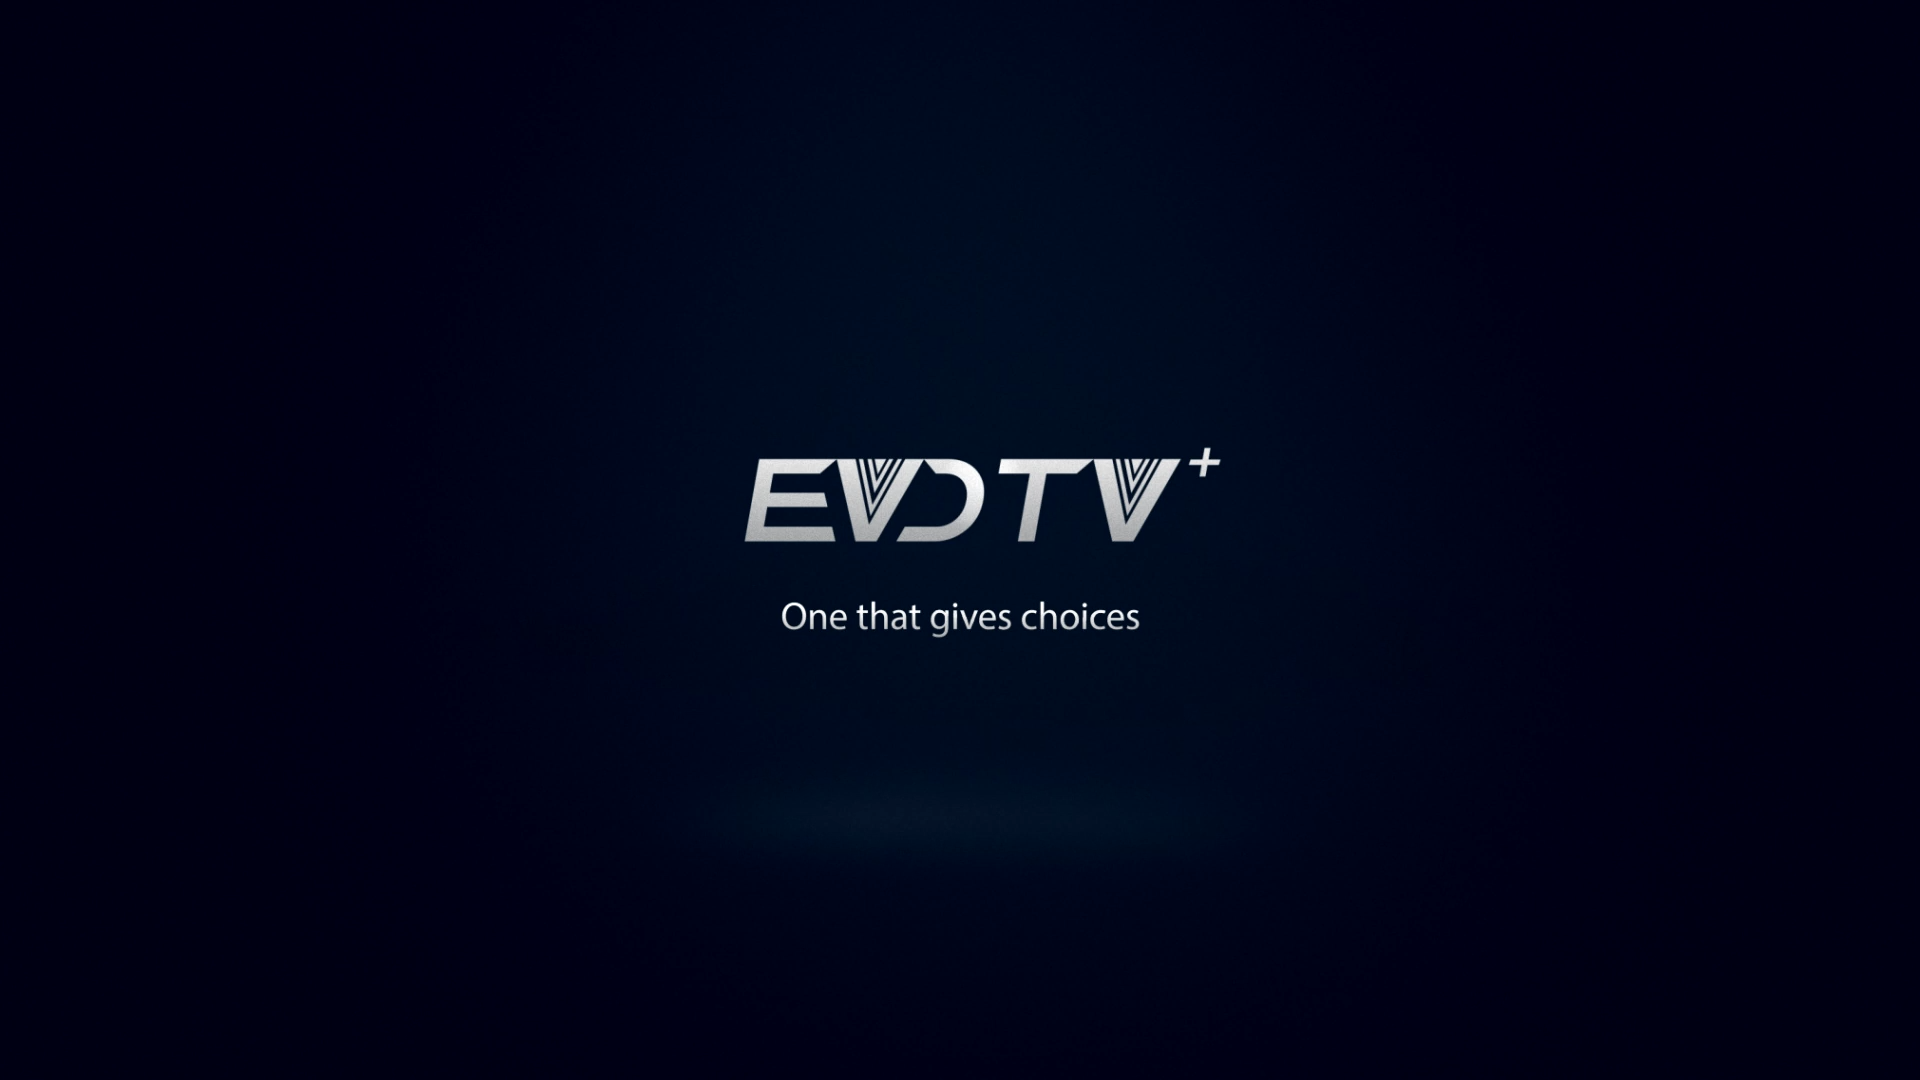 EVDTV box Android APK Commercio All'ingrosso Francese Francia Italia Germania Arabo x x x Tedesco Spagnolo Film Romania Canali IPTV